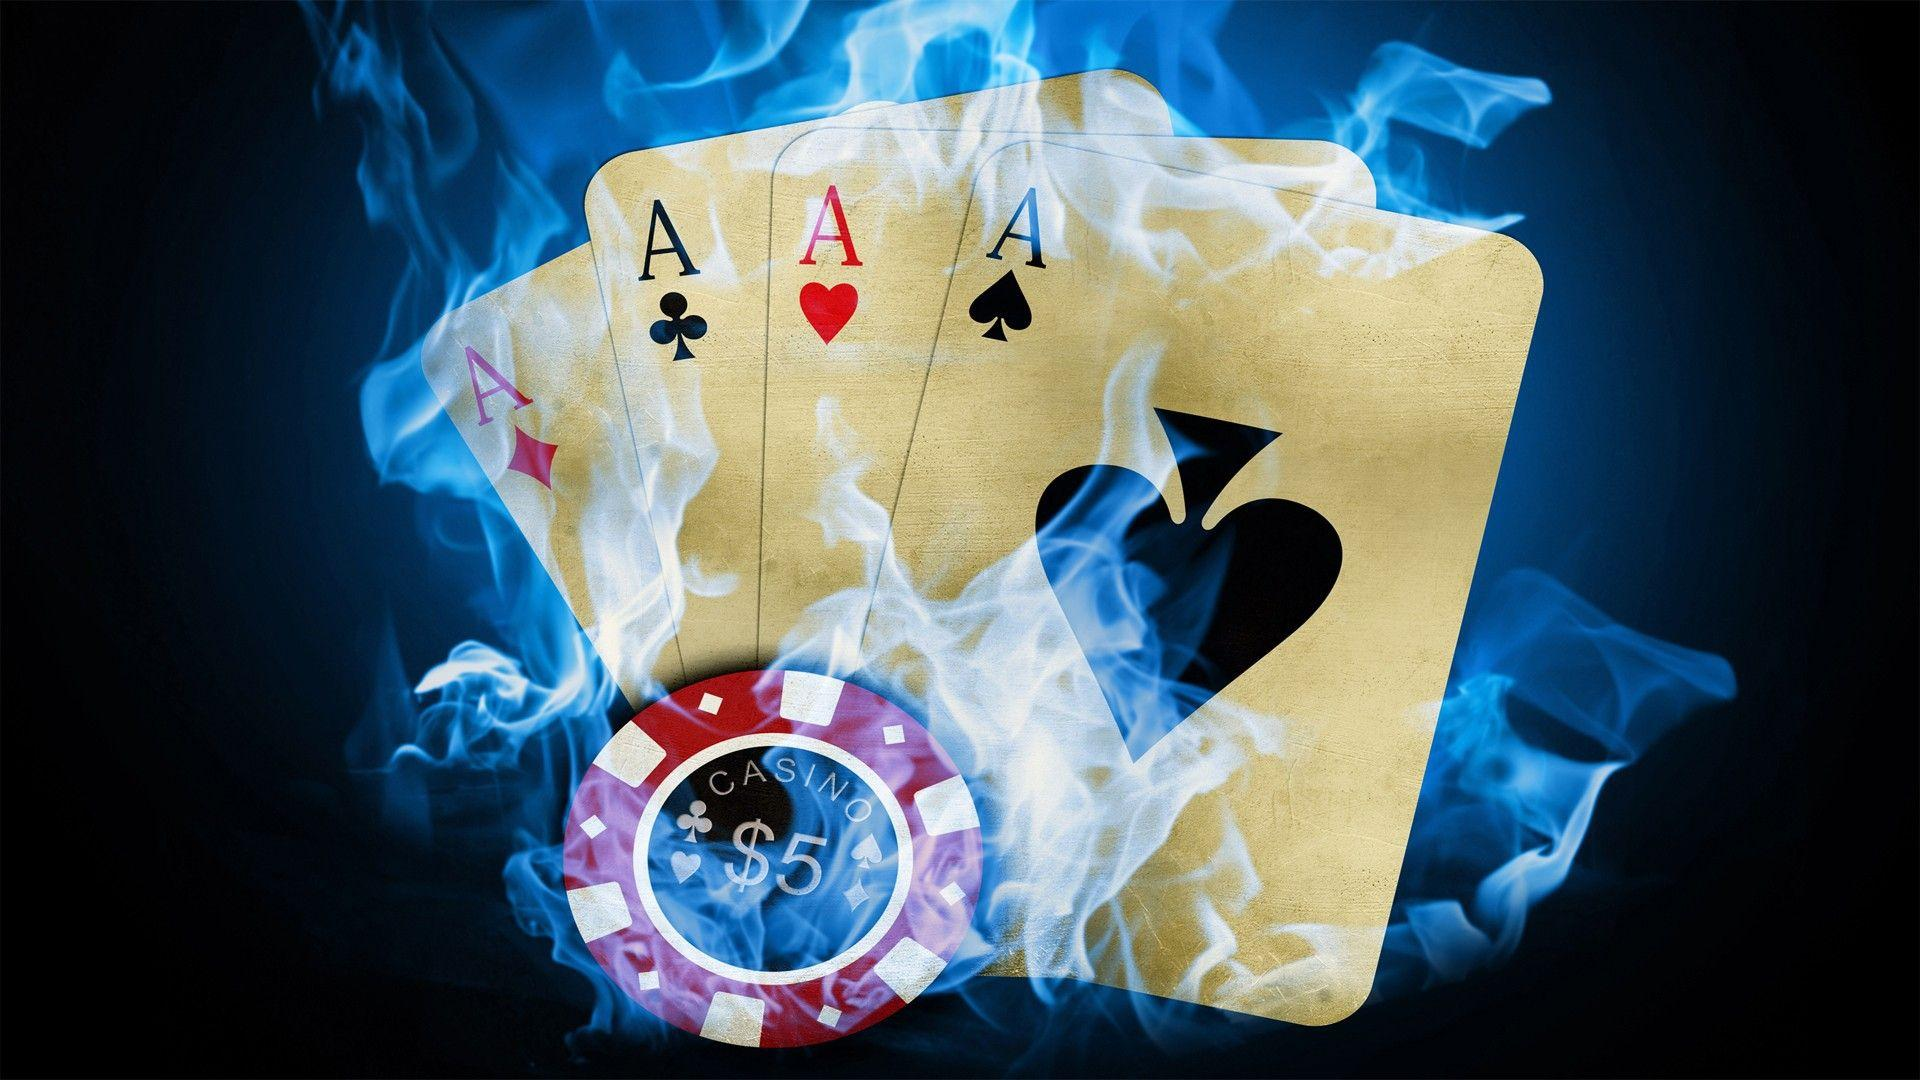 3 Reasons Poker Casino Is A Waste Of Time